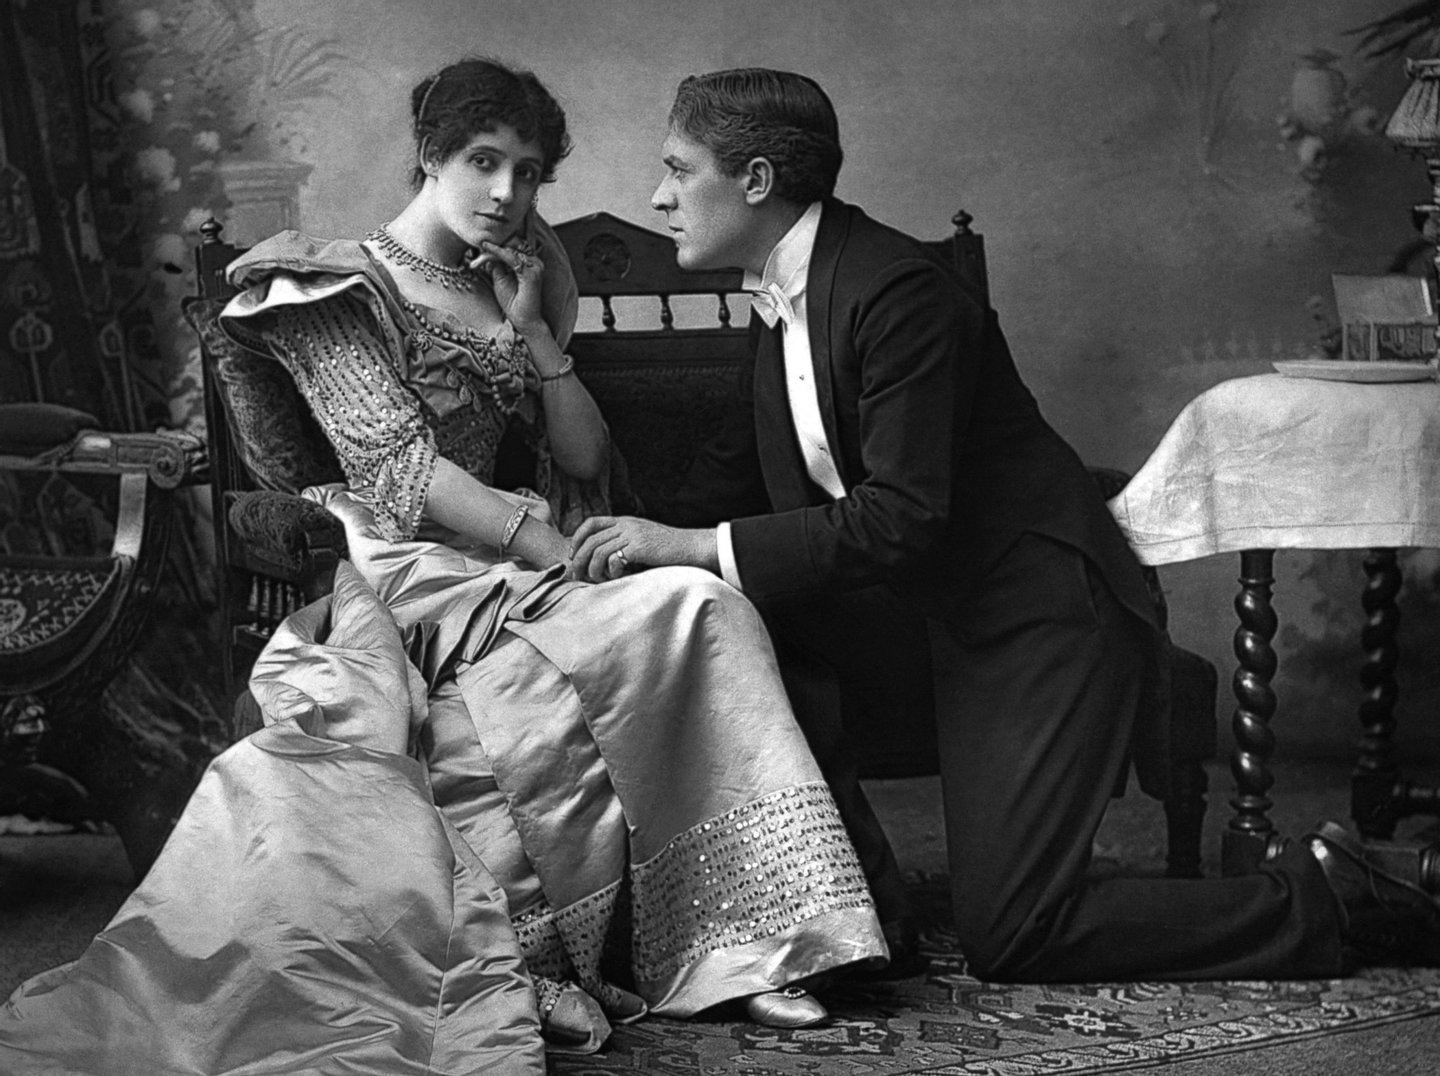 August 1893:  Mrs Patrick Campbell  (1865 - 1940) with Sir George Alexander (1858 - 1918) in 'The Second Mrs Tanqueray'. Original Publication: The Theatre - pub. 1893  (Photo by Hulton Archive/Getty Images)